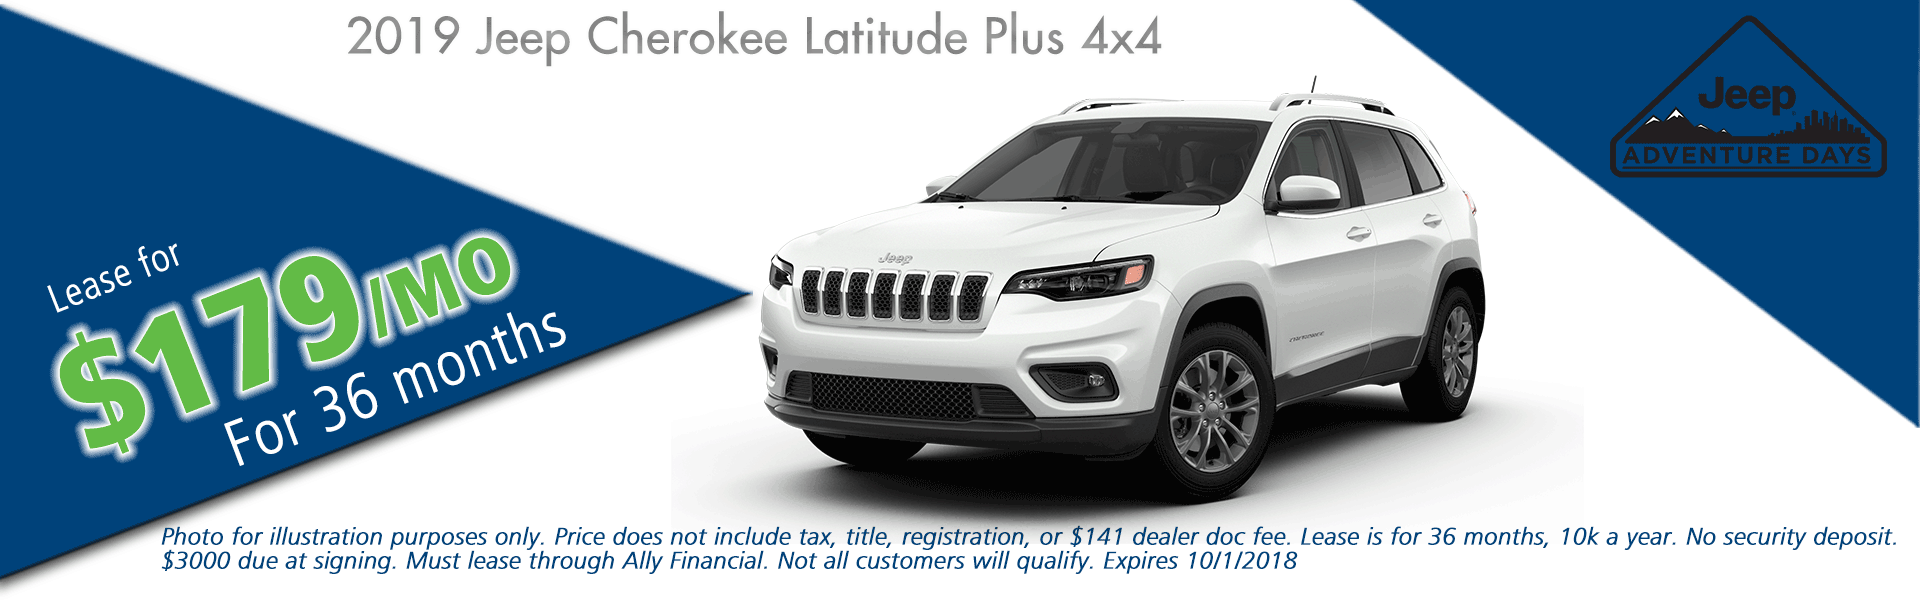 CarRight Chrysler Jeep Dodge Ram, Moon Township, PA Sales Service Body Shop Parts NEW 2019 JEEP CHEROKEE LATITUDE PLUS 4X4